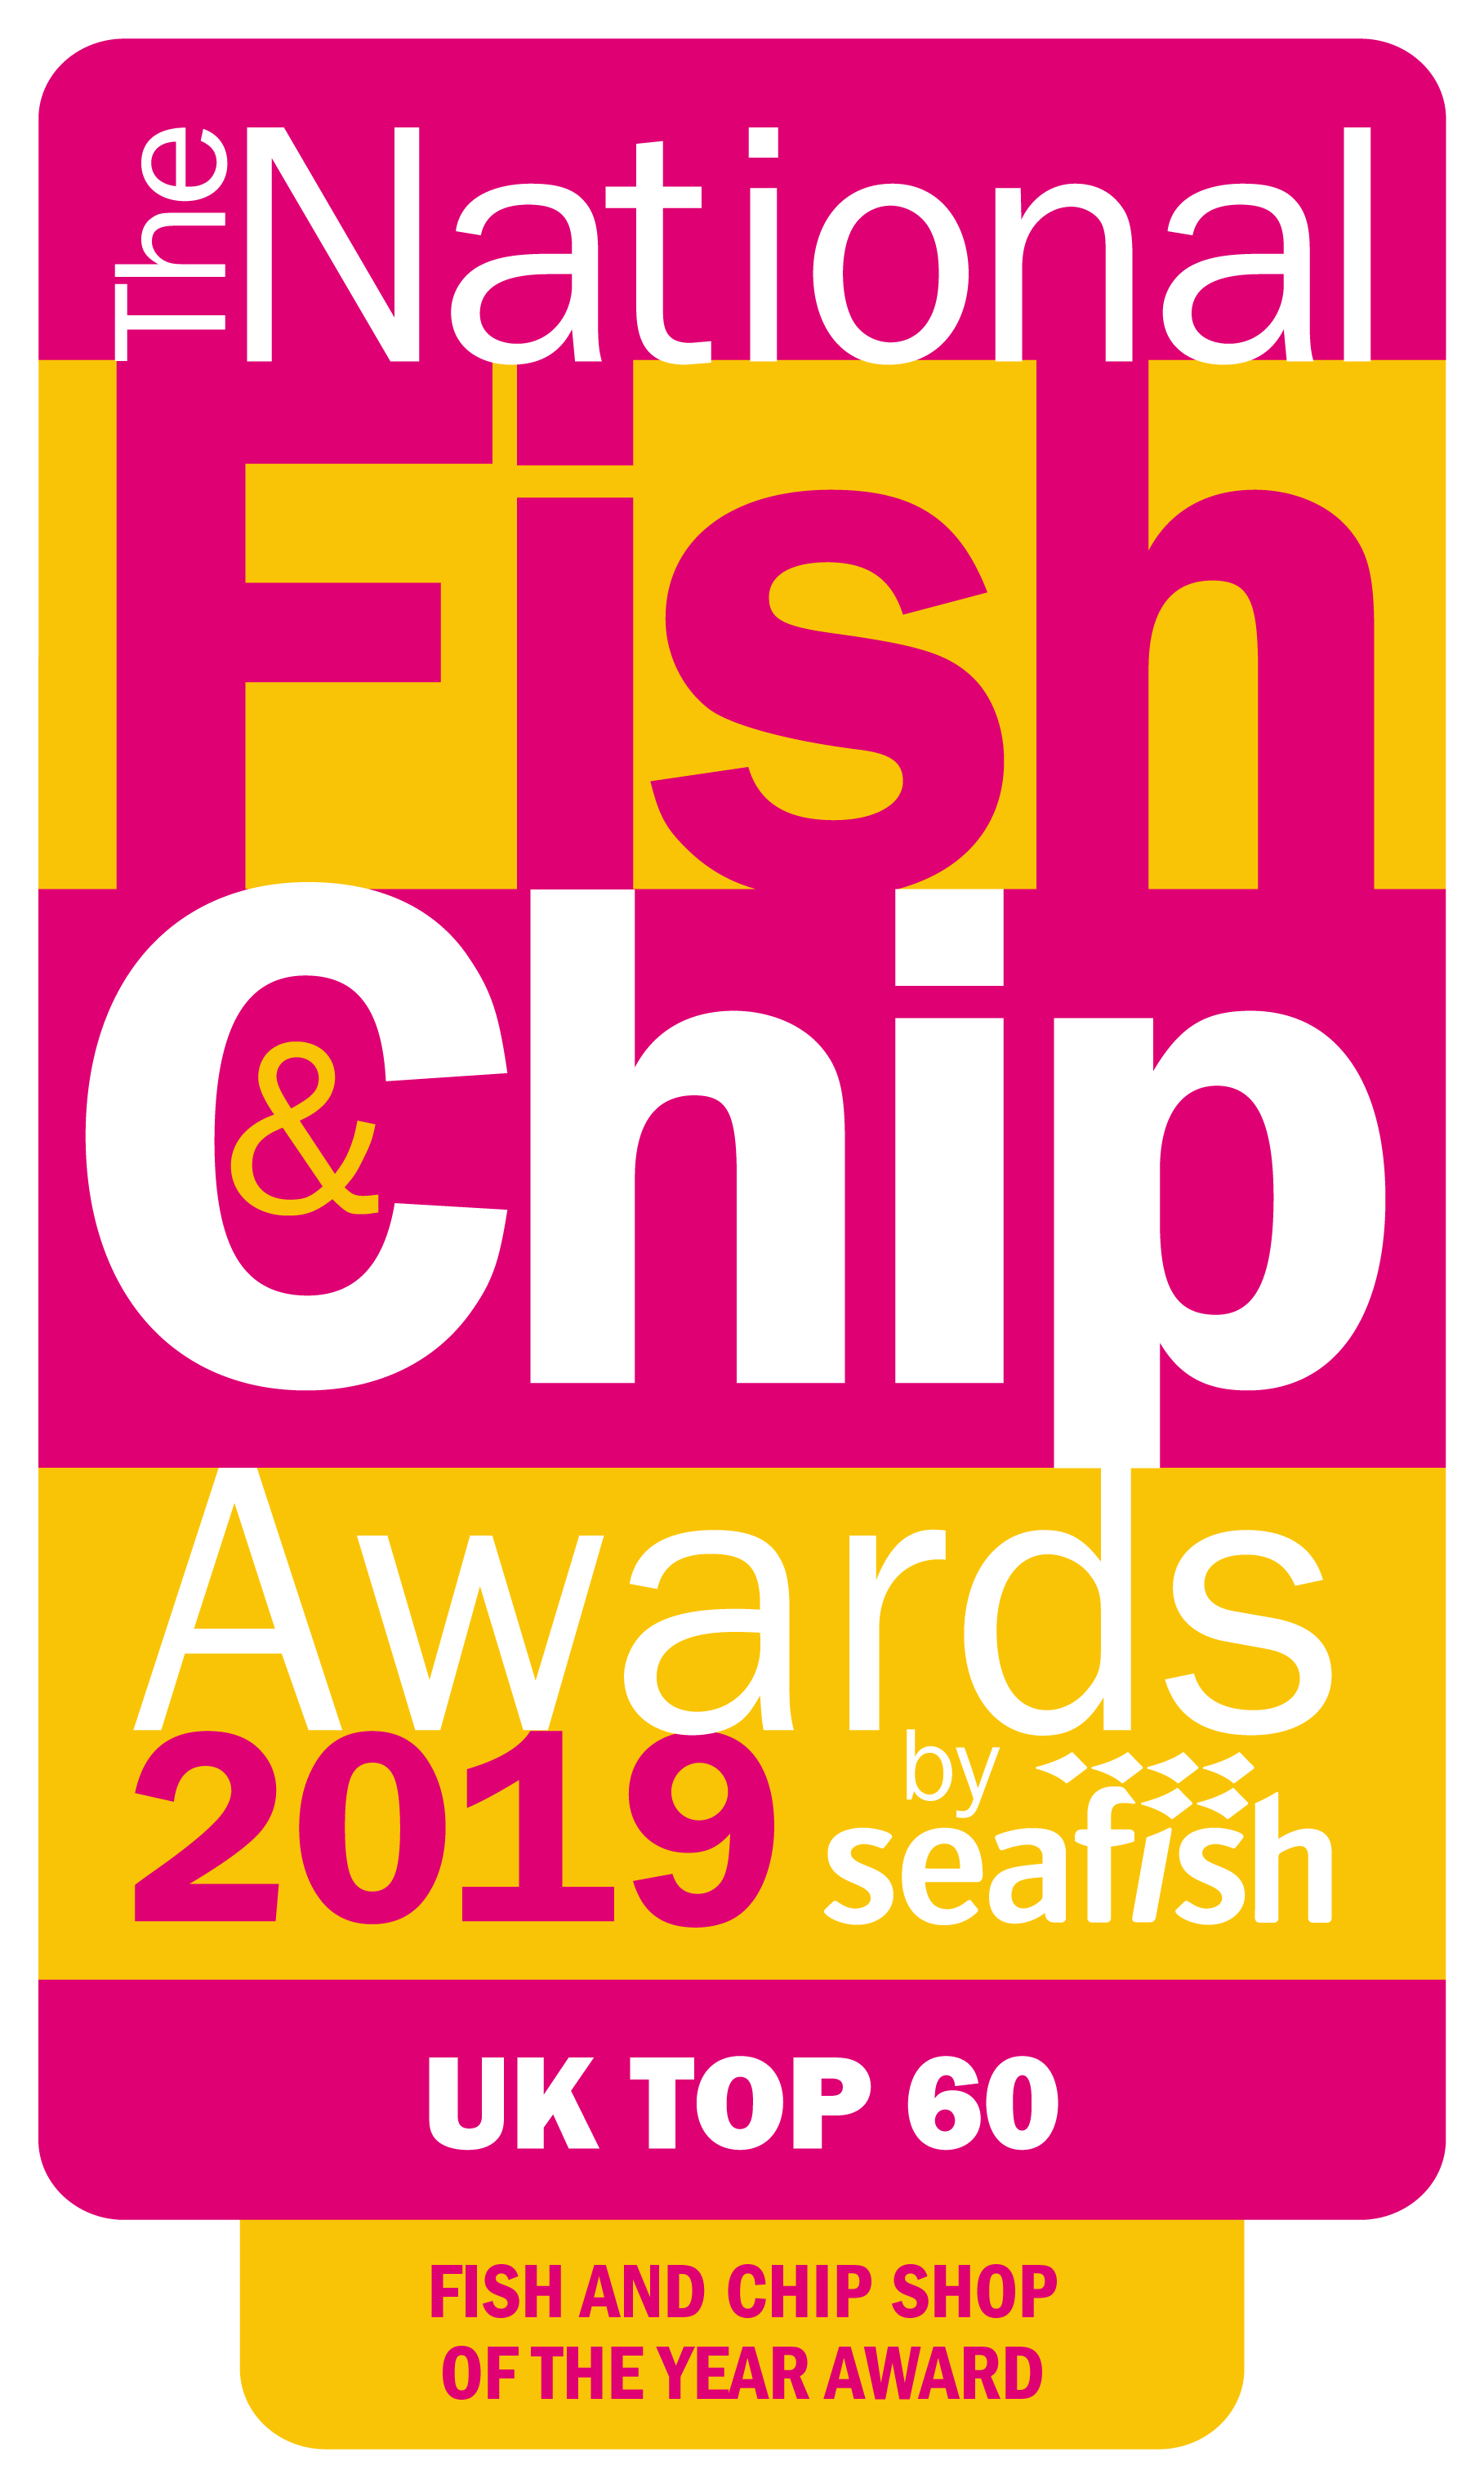 NFCA19 Top 60 Logo - Fish and Chip Shop of the Year Award